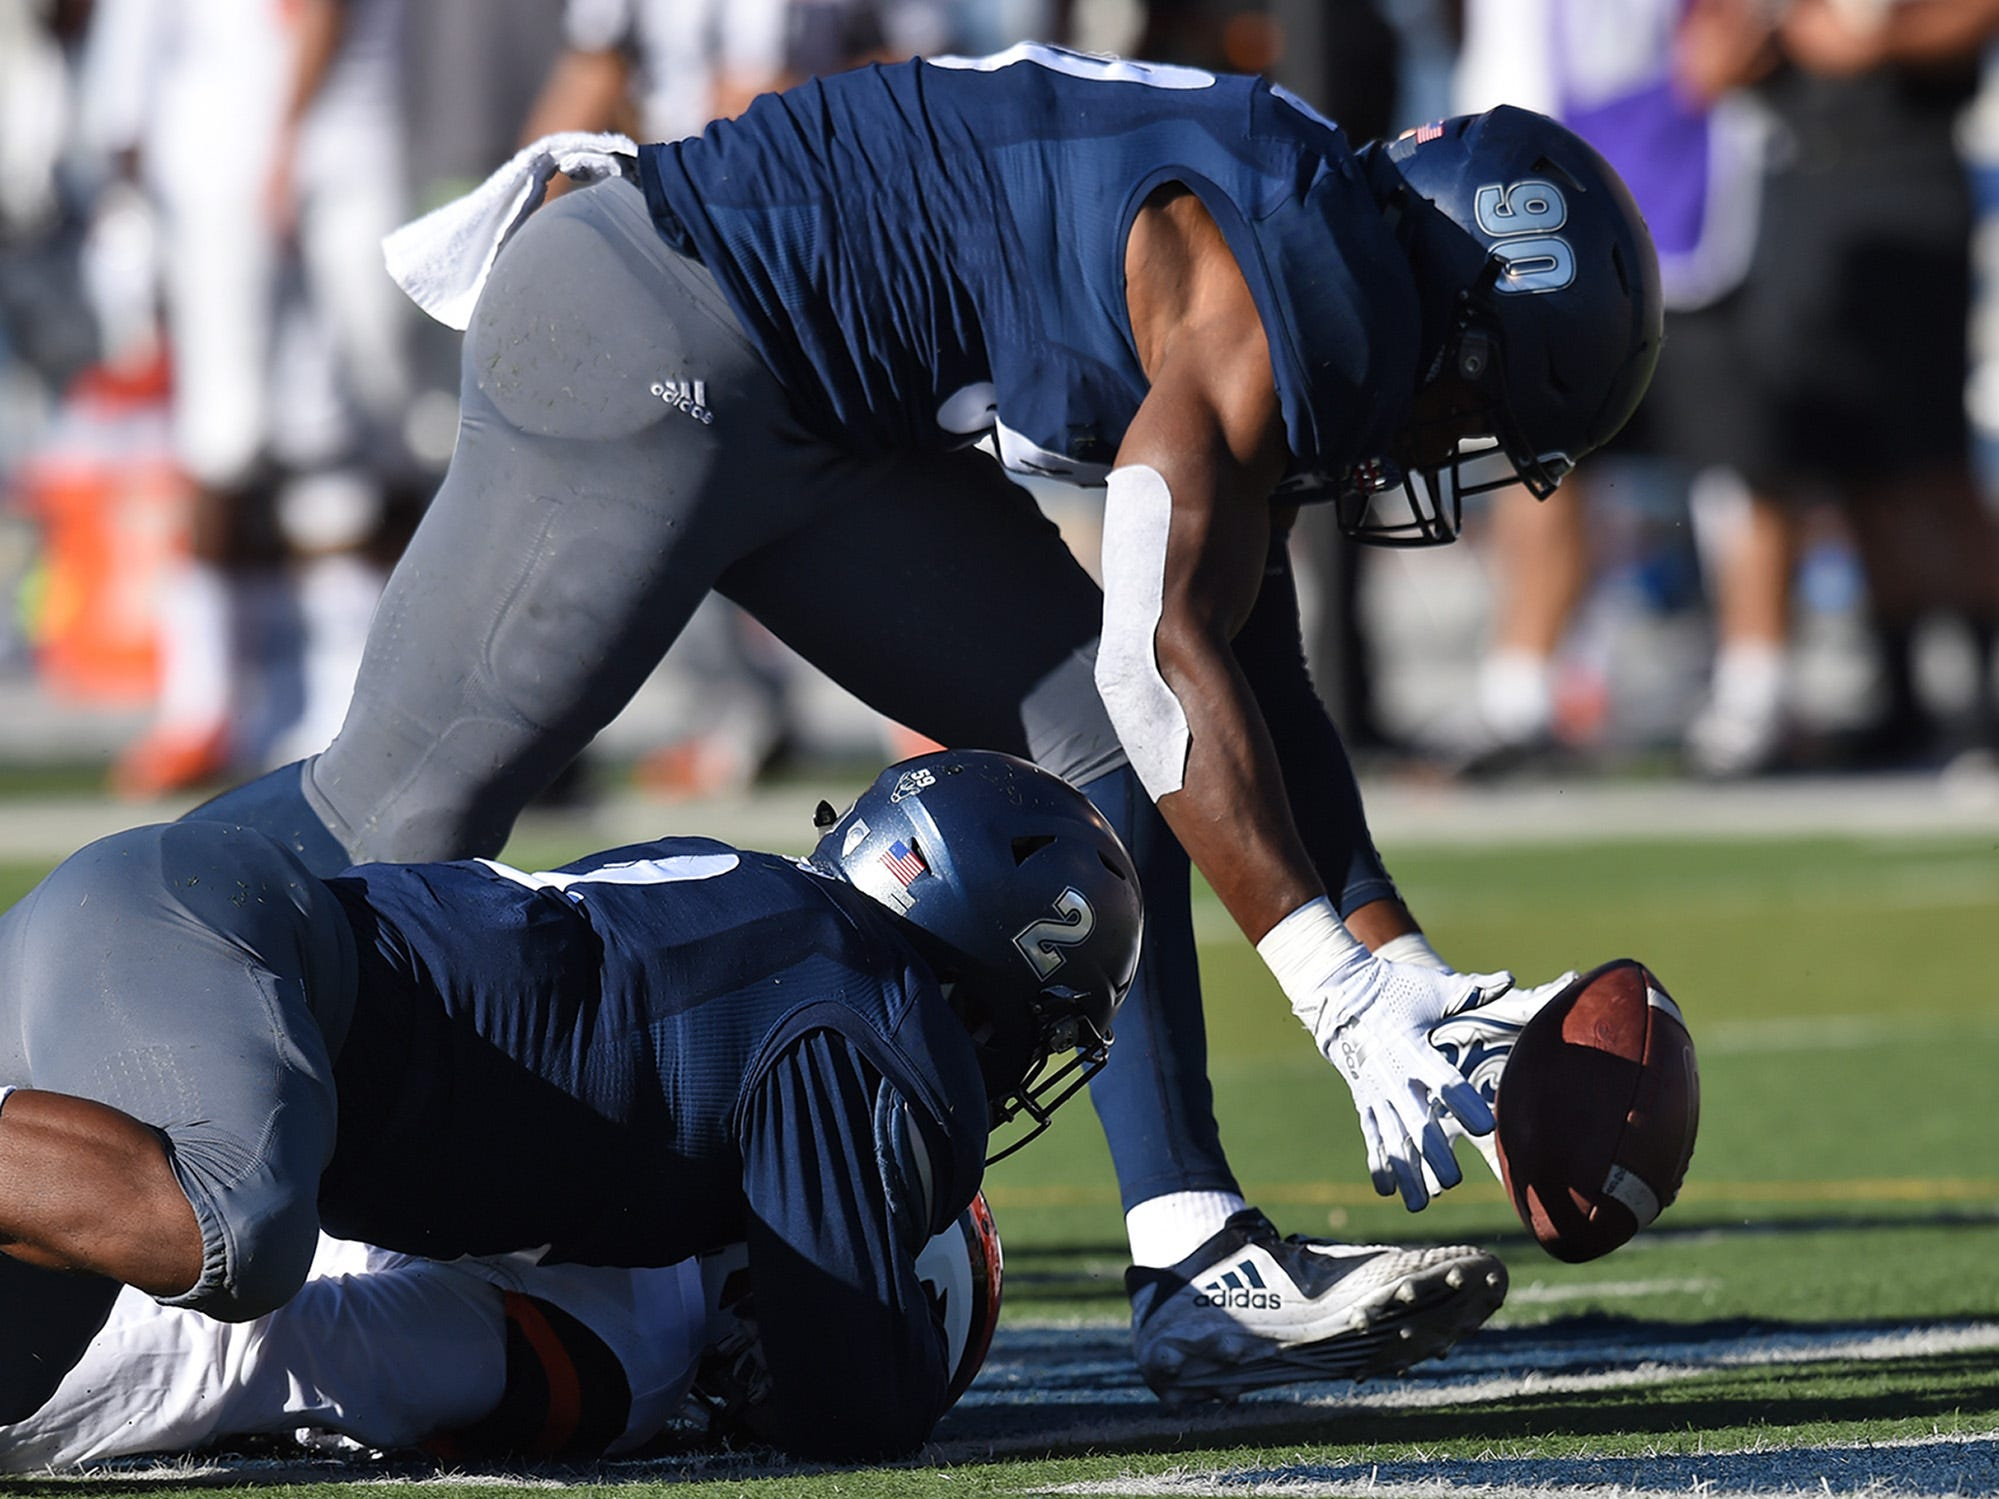 Nevada DE Malik Reed picks up a fumble by Oregon State QB who fumble the ball after he was tackled by Asauni Rugus at Mackay Stadium on Sept. 15, 2018.